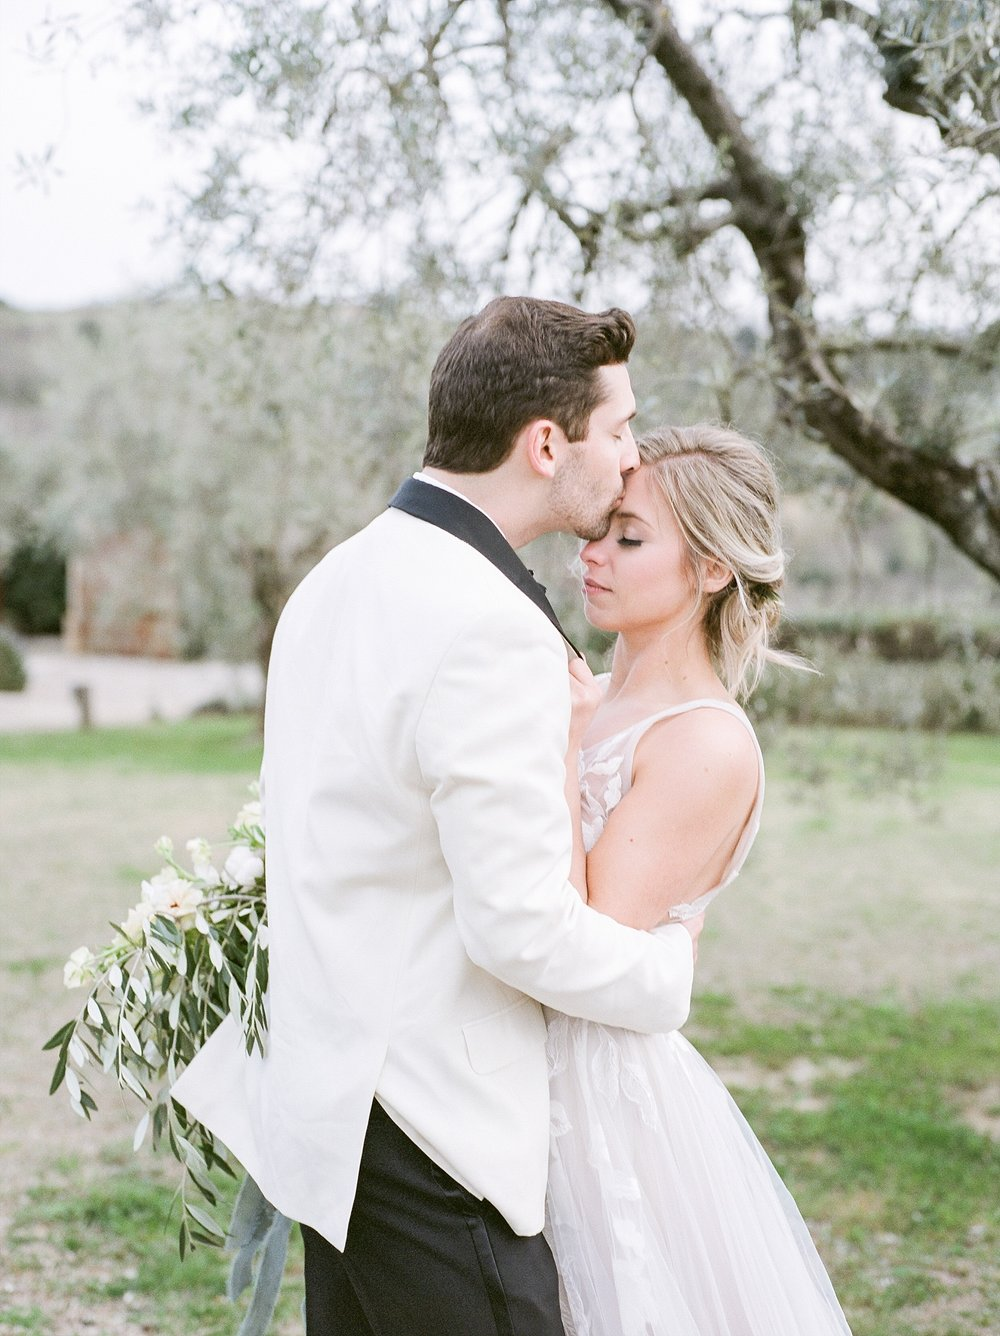 All White Destination Wedding in the Hills of Tuscany Italy at Estate Borgo Petrognano by Kelsi Kliethermes Photography_0063.jpg